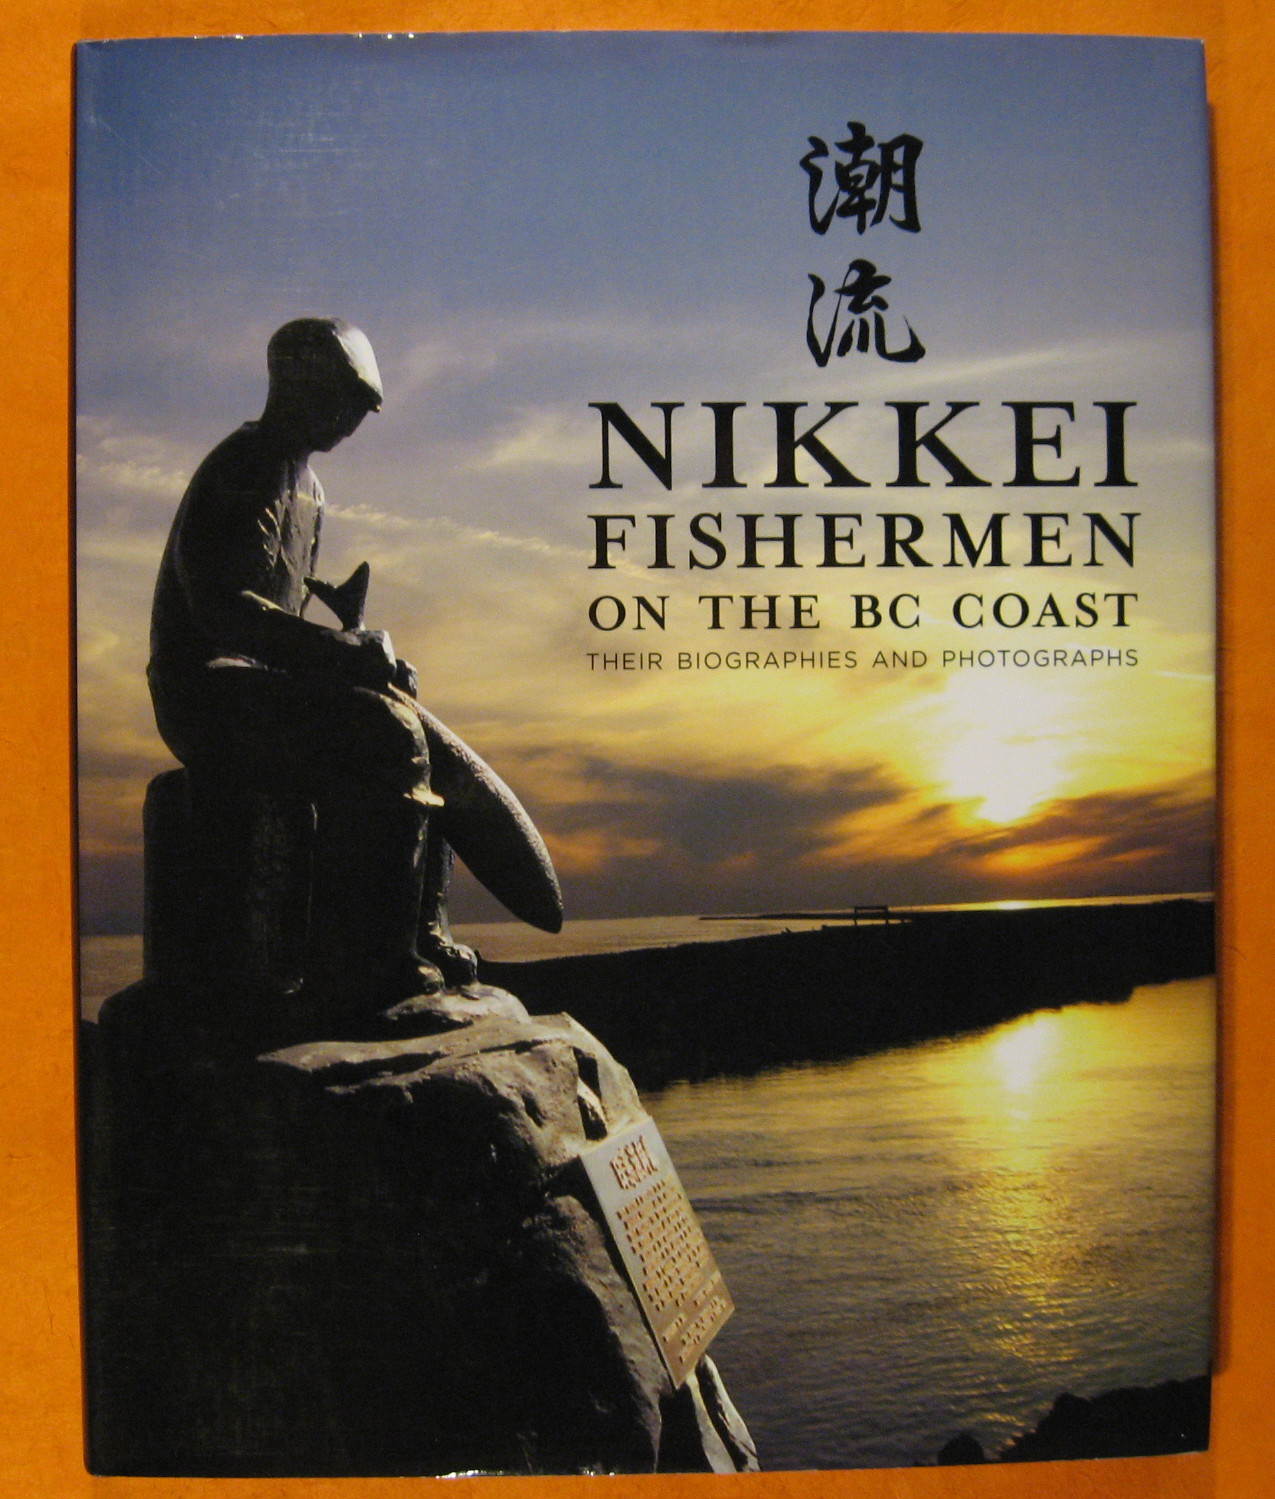 Nikkei Fishermen on the BC Coast: Their Biographies and Photographs, No Author